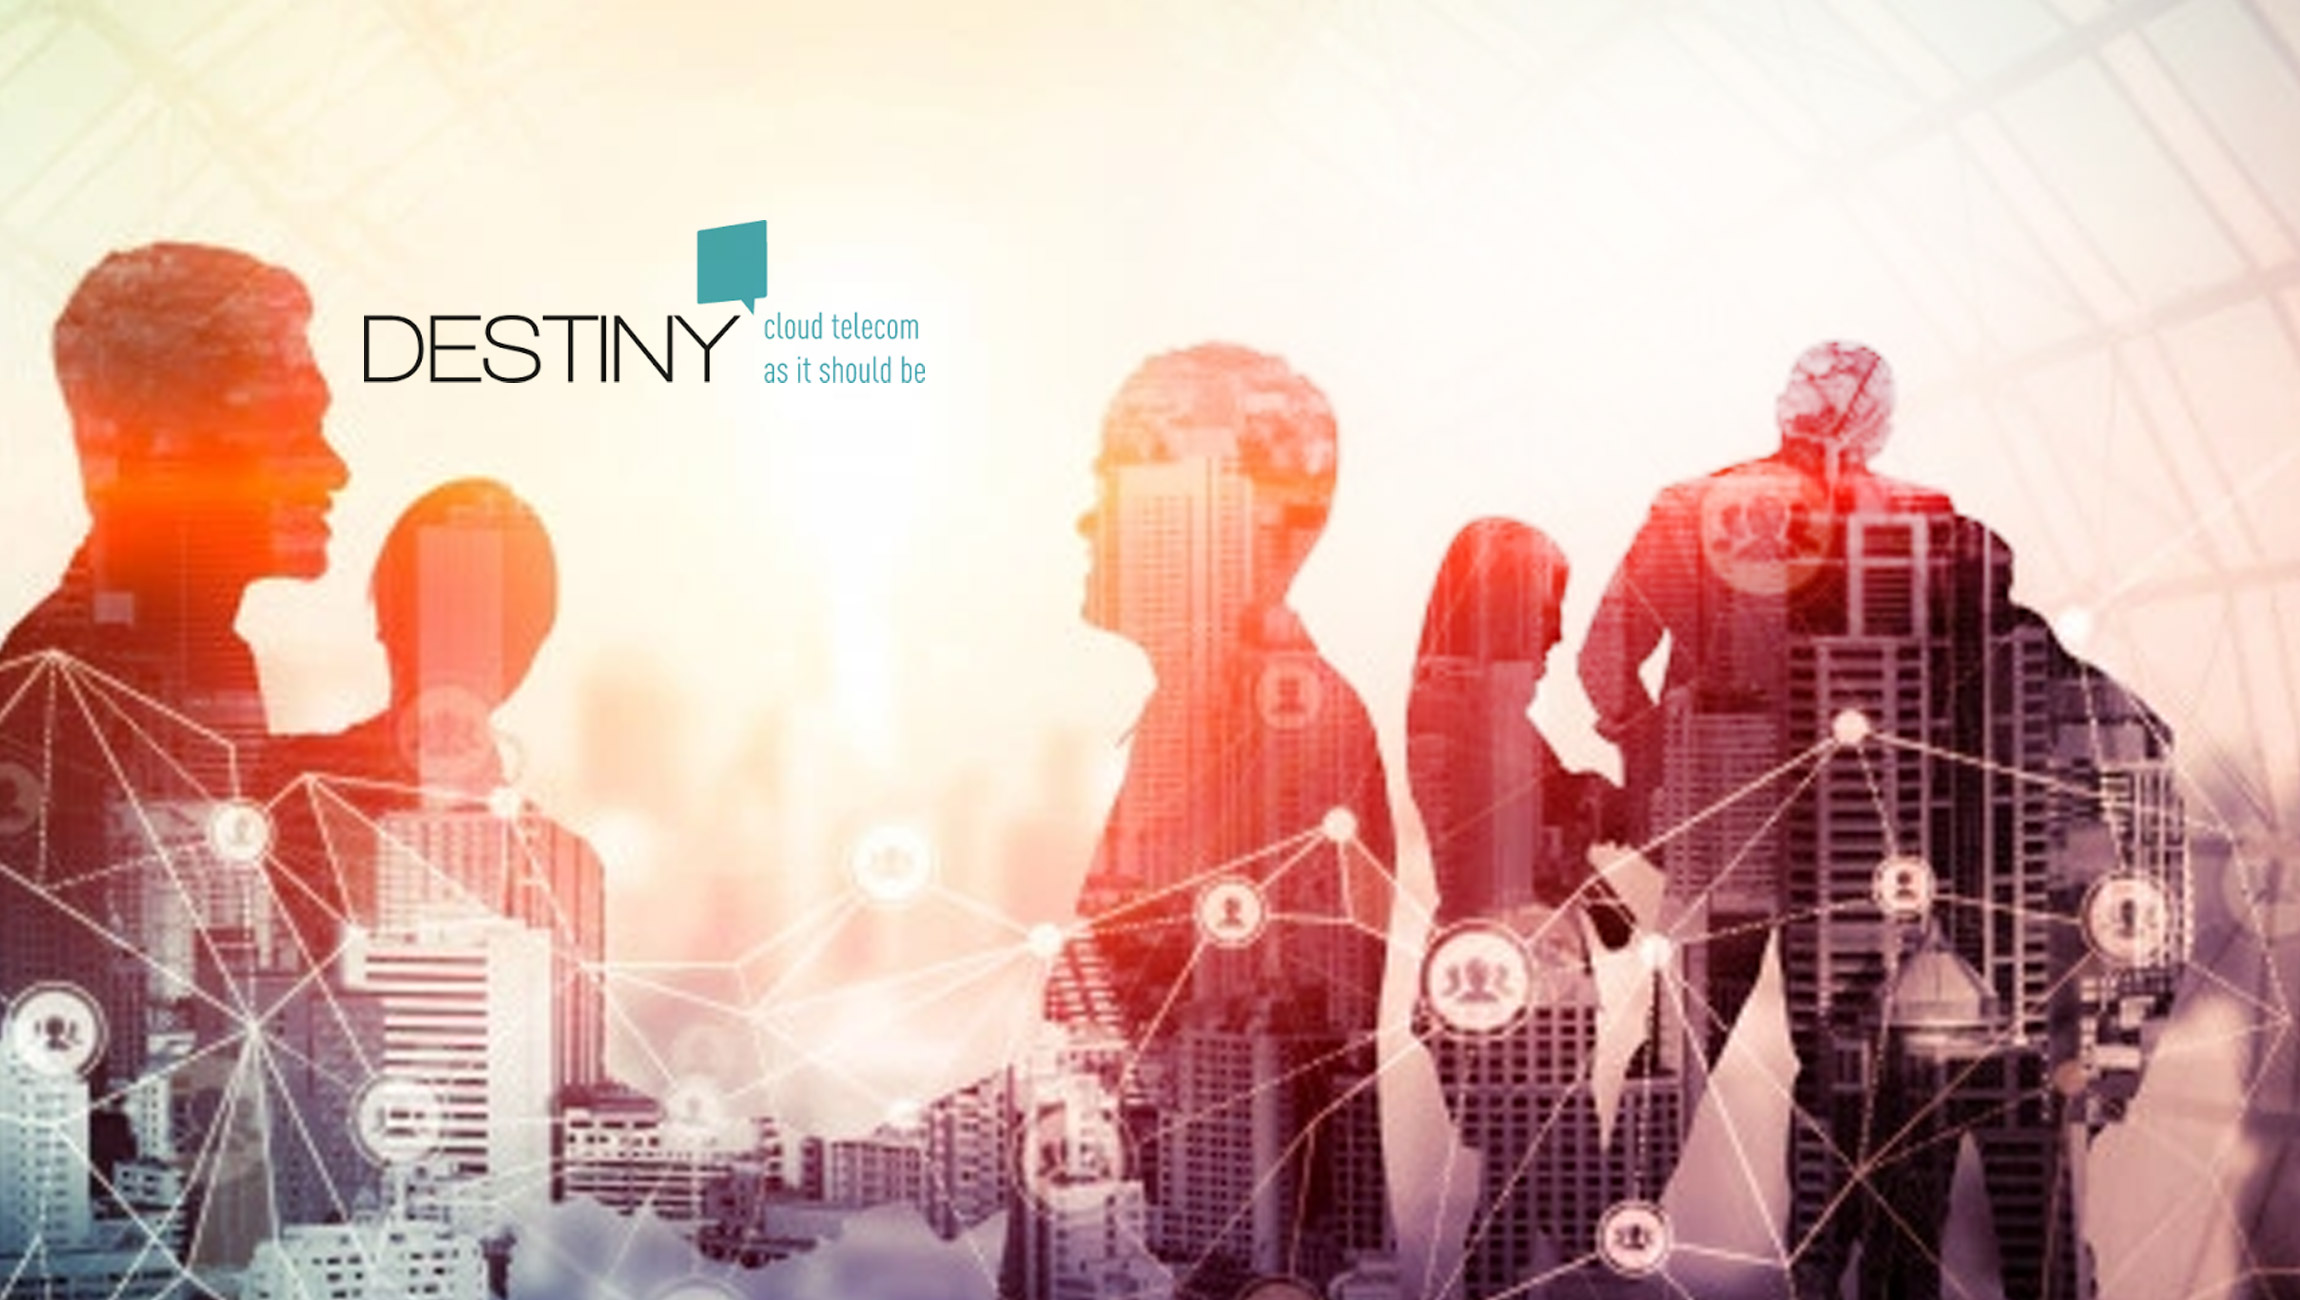 New-acquisition-strengthens-Destiny's-position-as-Europe's-largest-UCaaS-provider